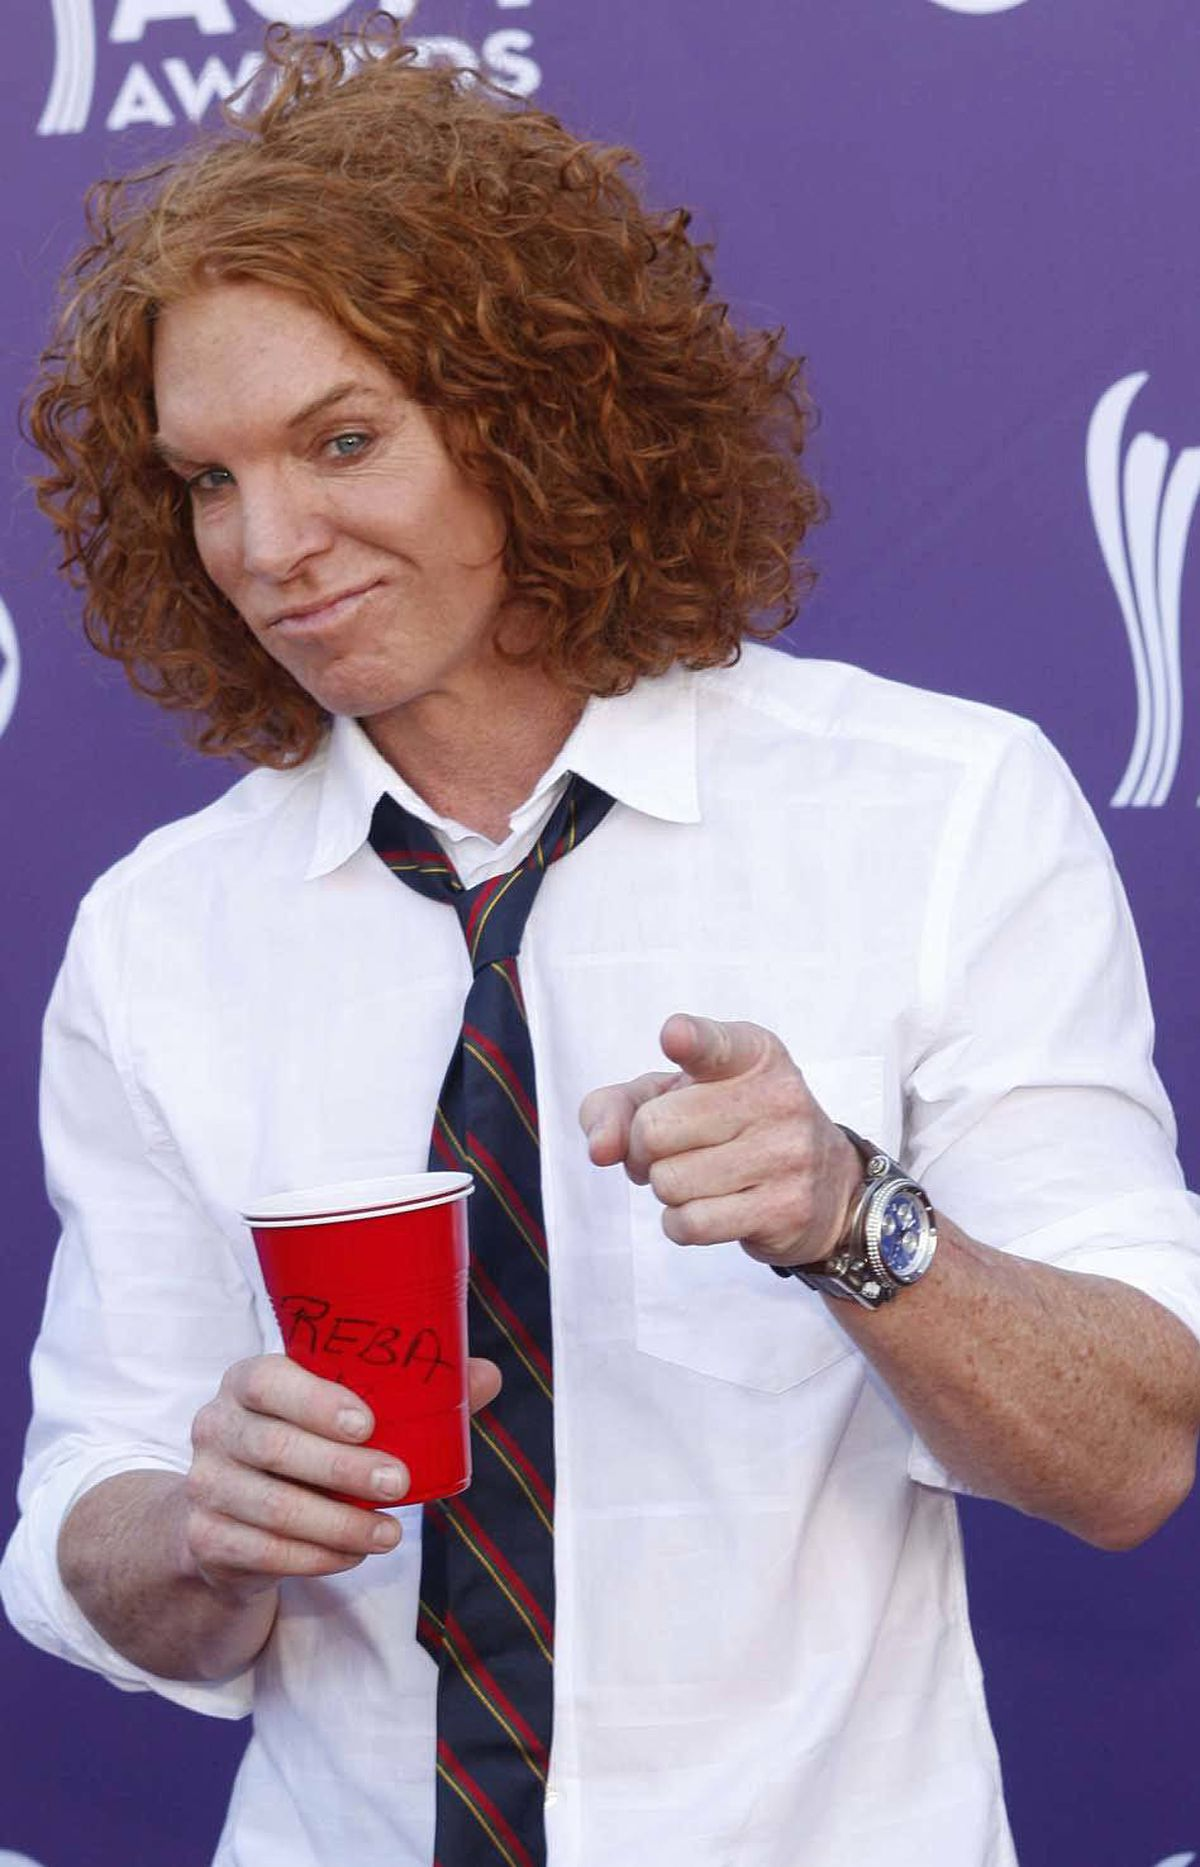 How the hell did Carrot Top become the avatar for my conscience?!?!